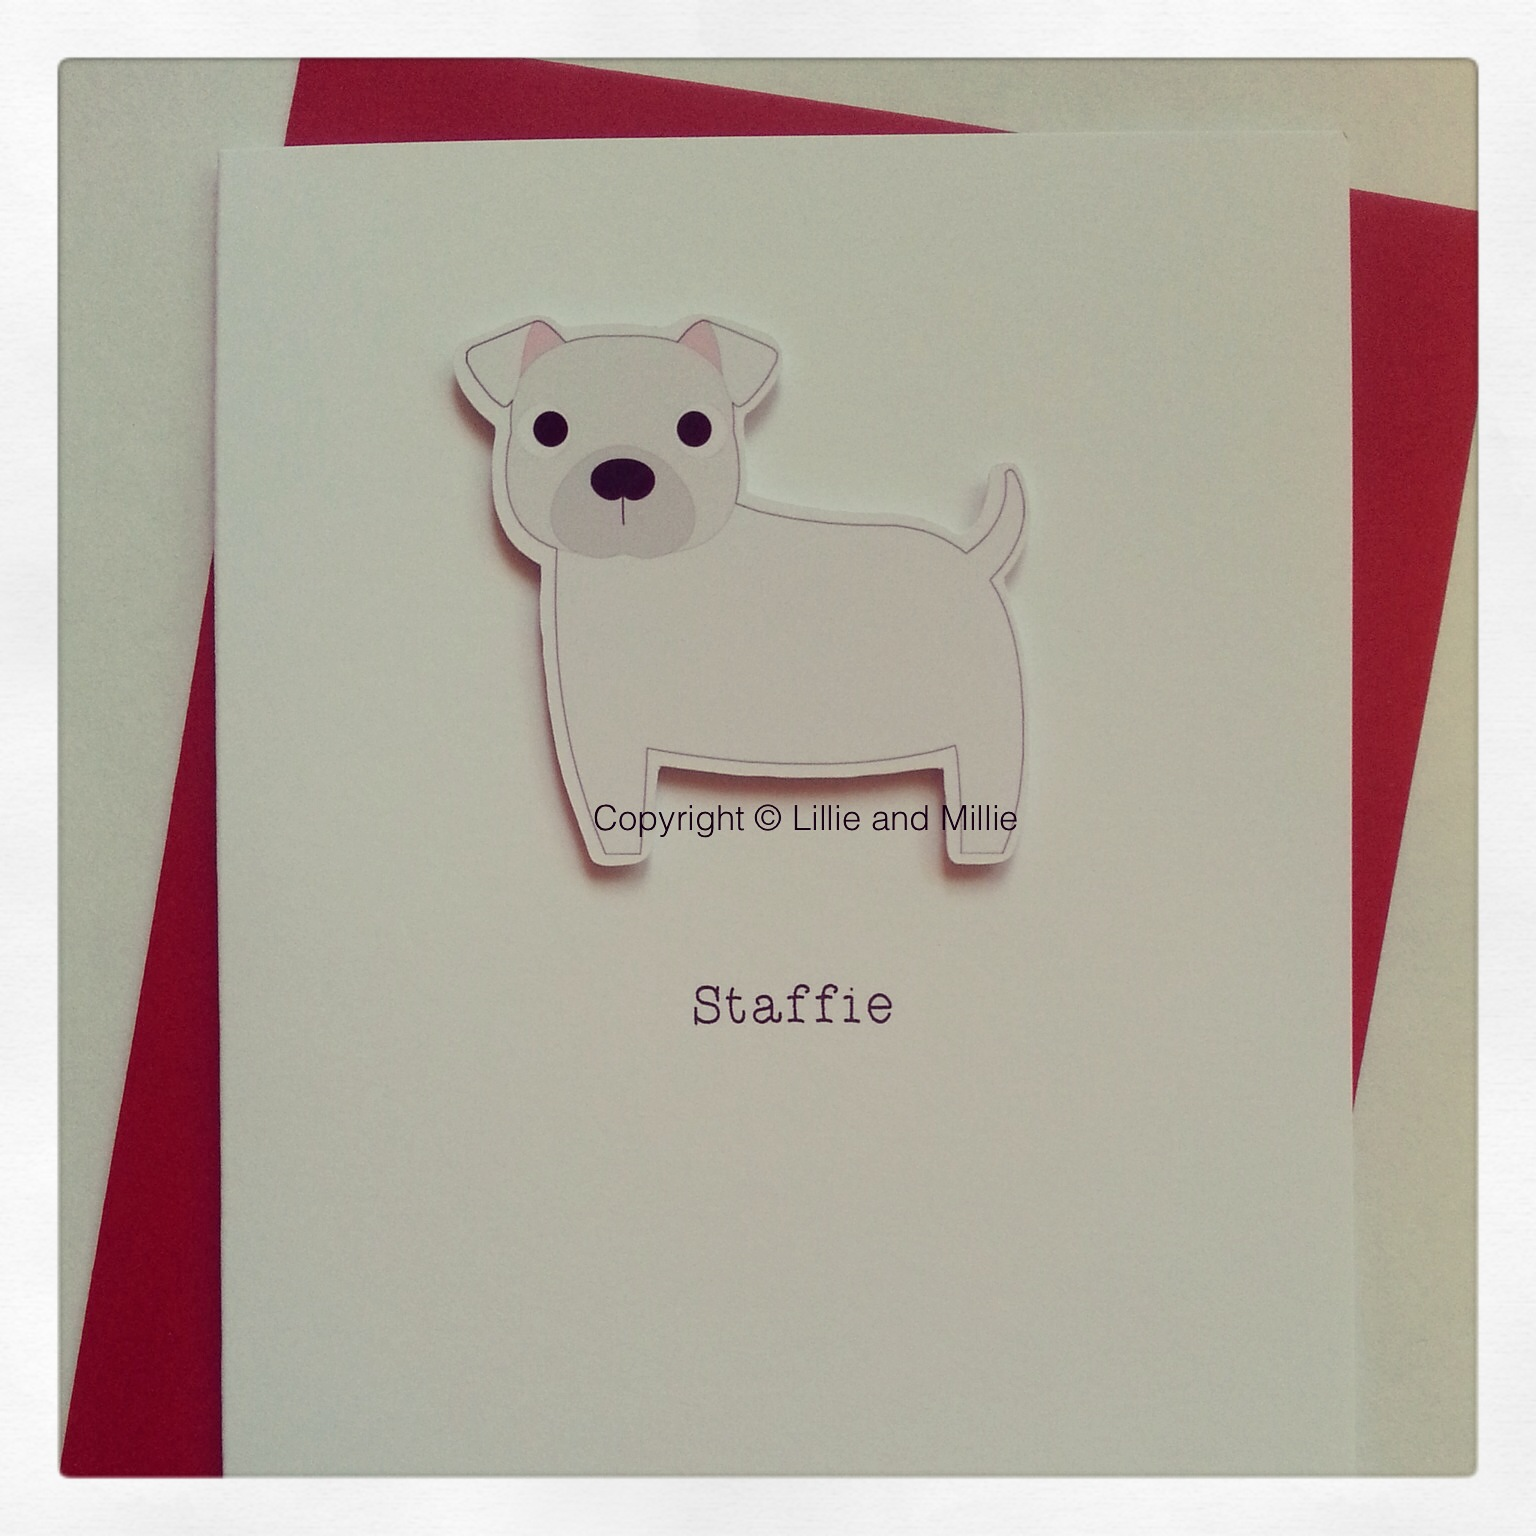 Staffie Dog Greetings Card